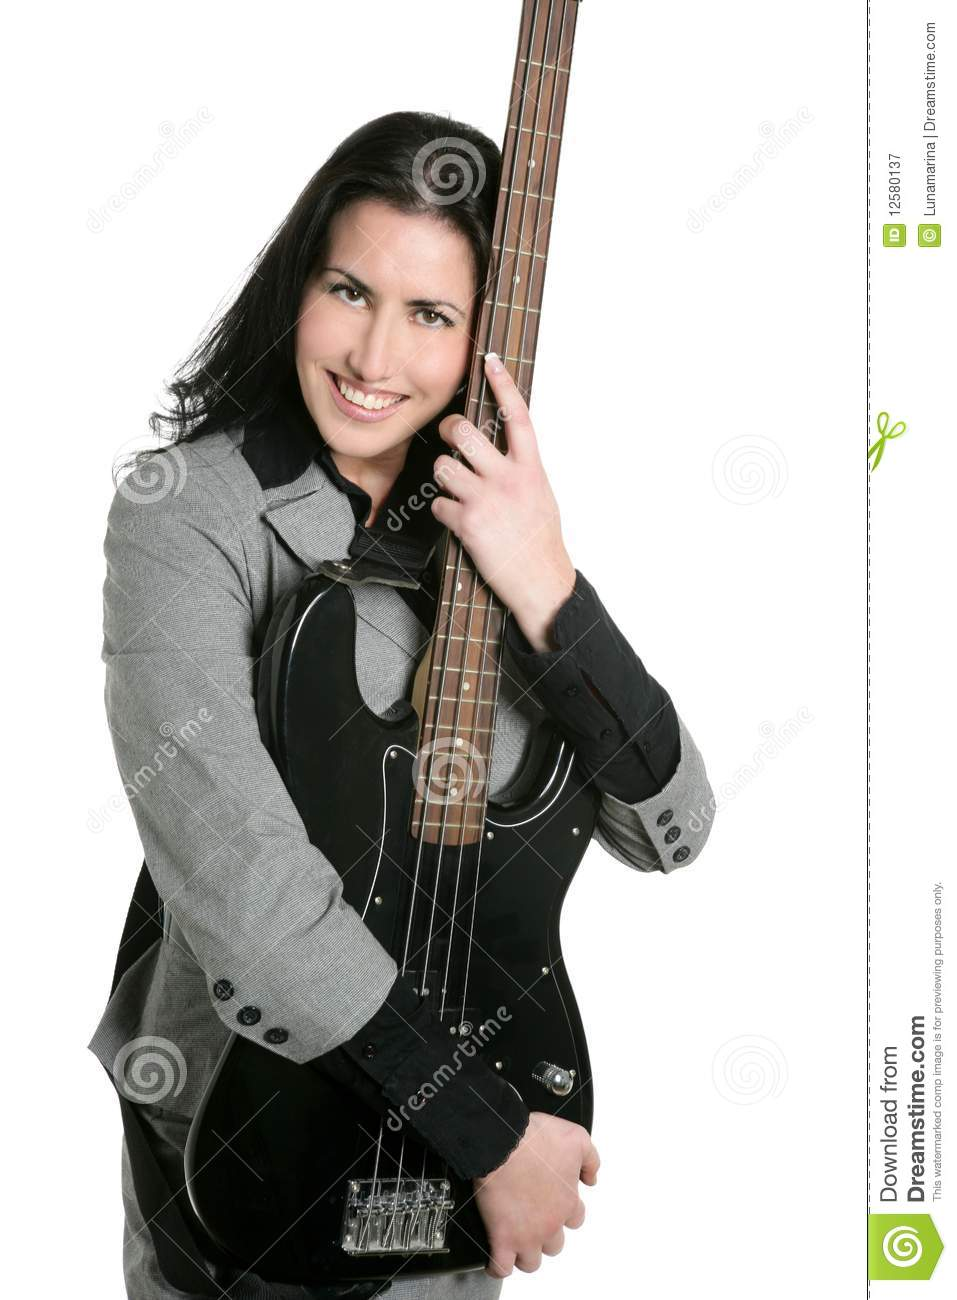 Businesswoman Guitar Player Suit And Rock Royalty Free ...